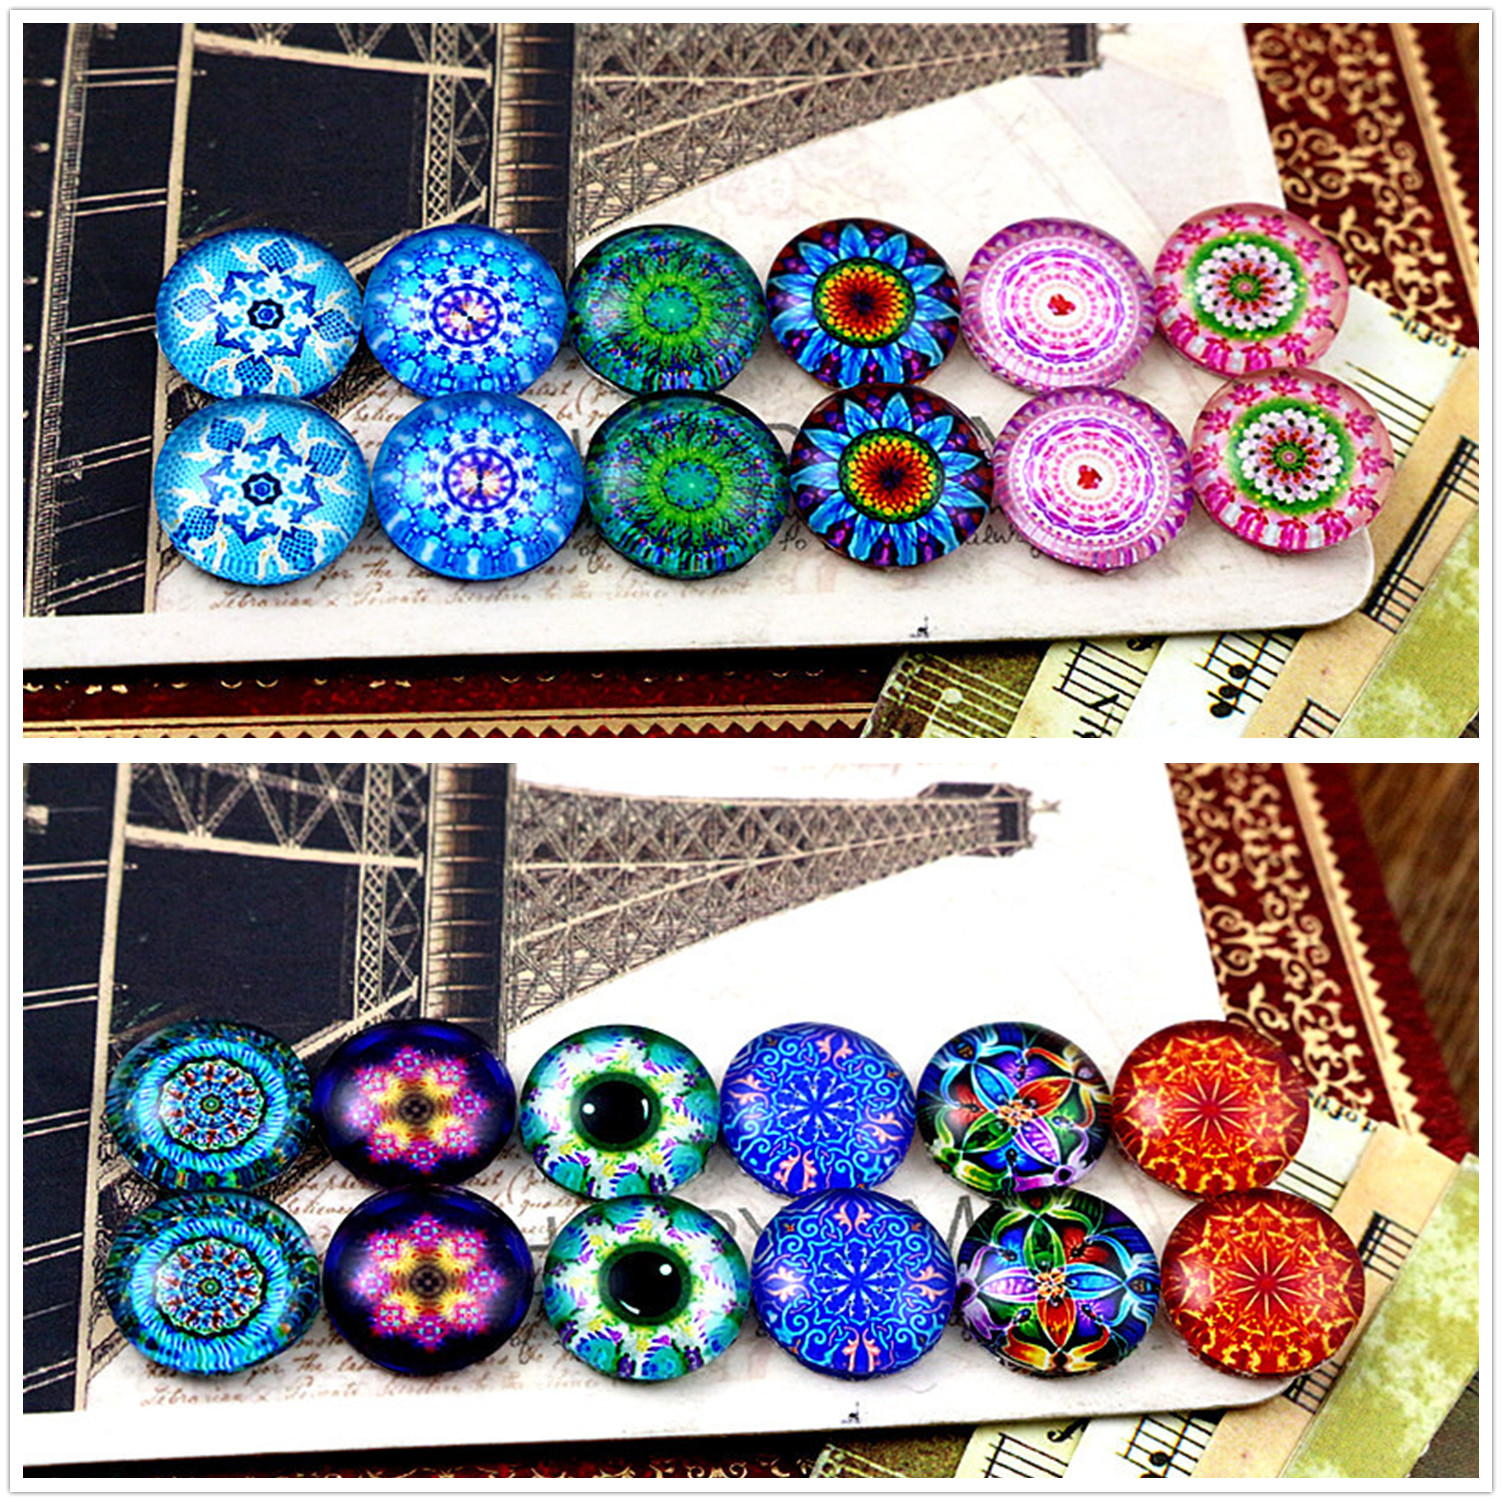 12pcs/lot (One Set) Two Style 12mm Sun Flowers Handmade Glass Cabochons Pattern Domed Jewelry Accessories Supplies